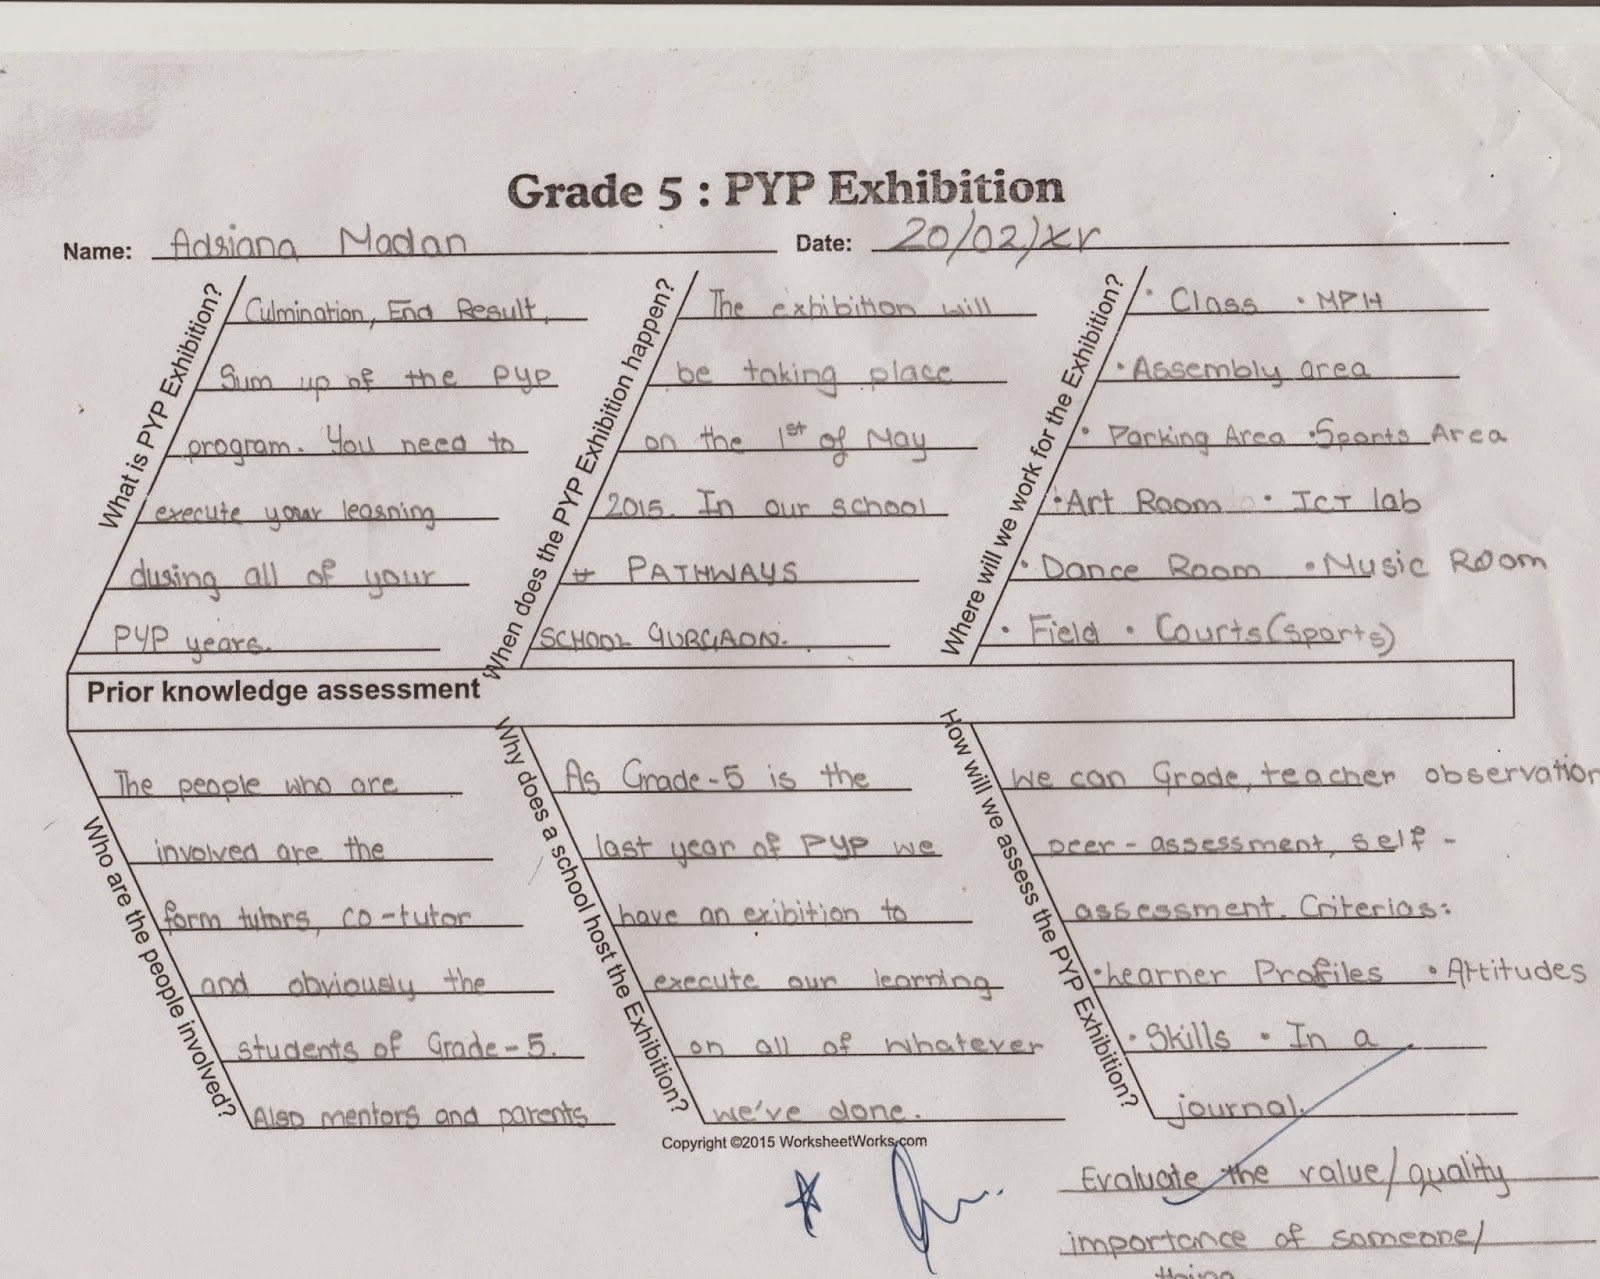 Pathways School Gurgaon , PYP Exhibition 2015